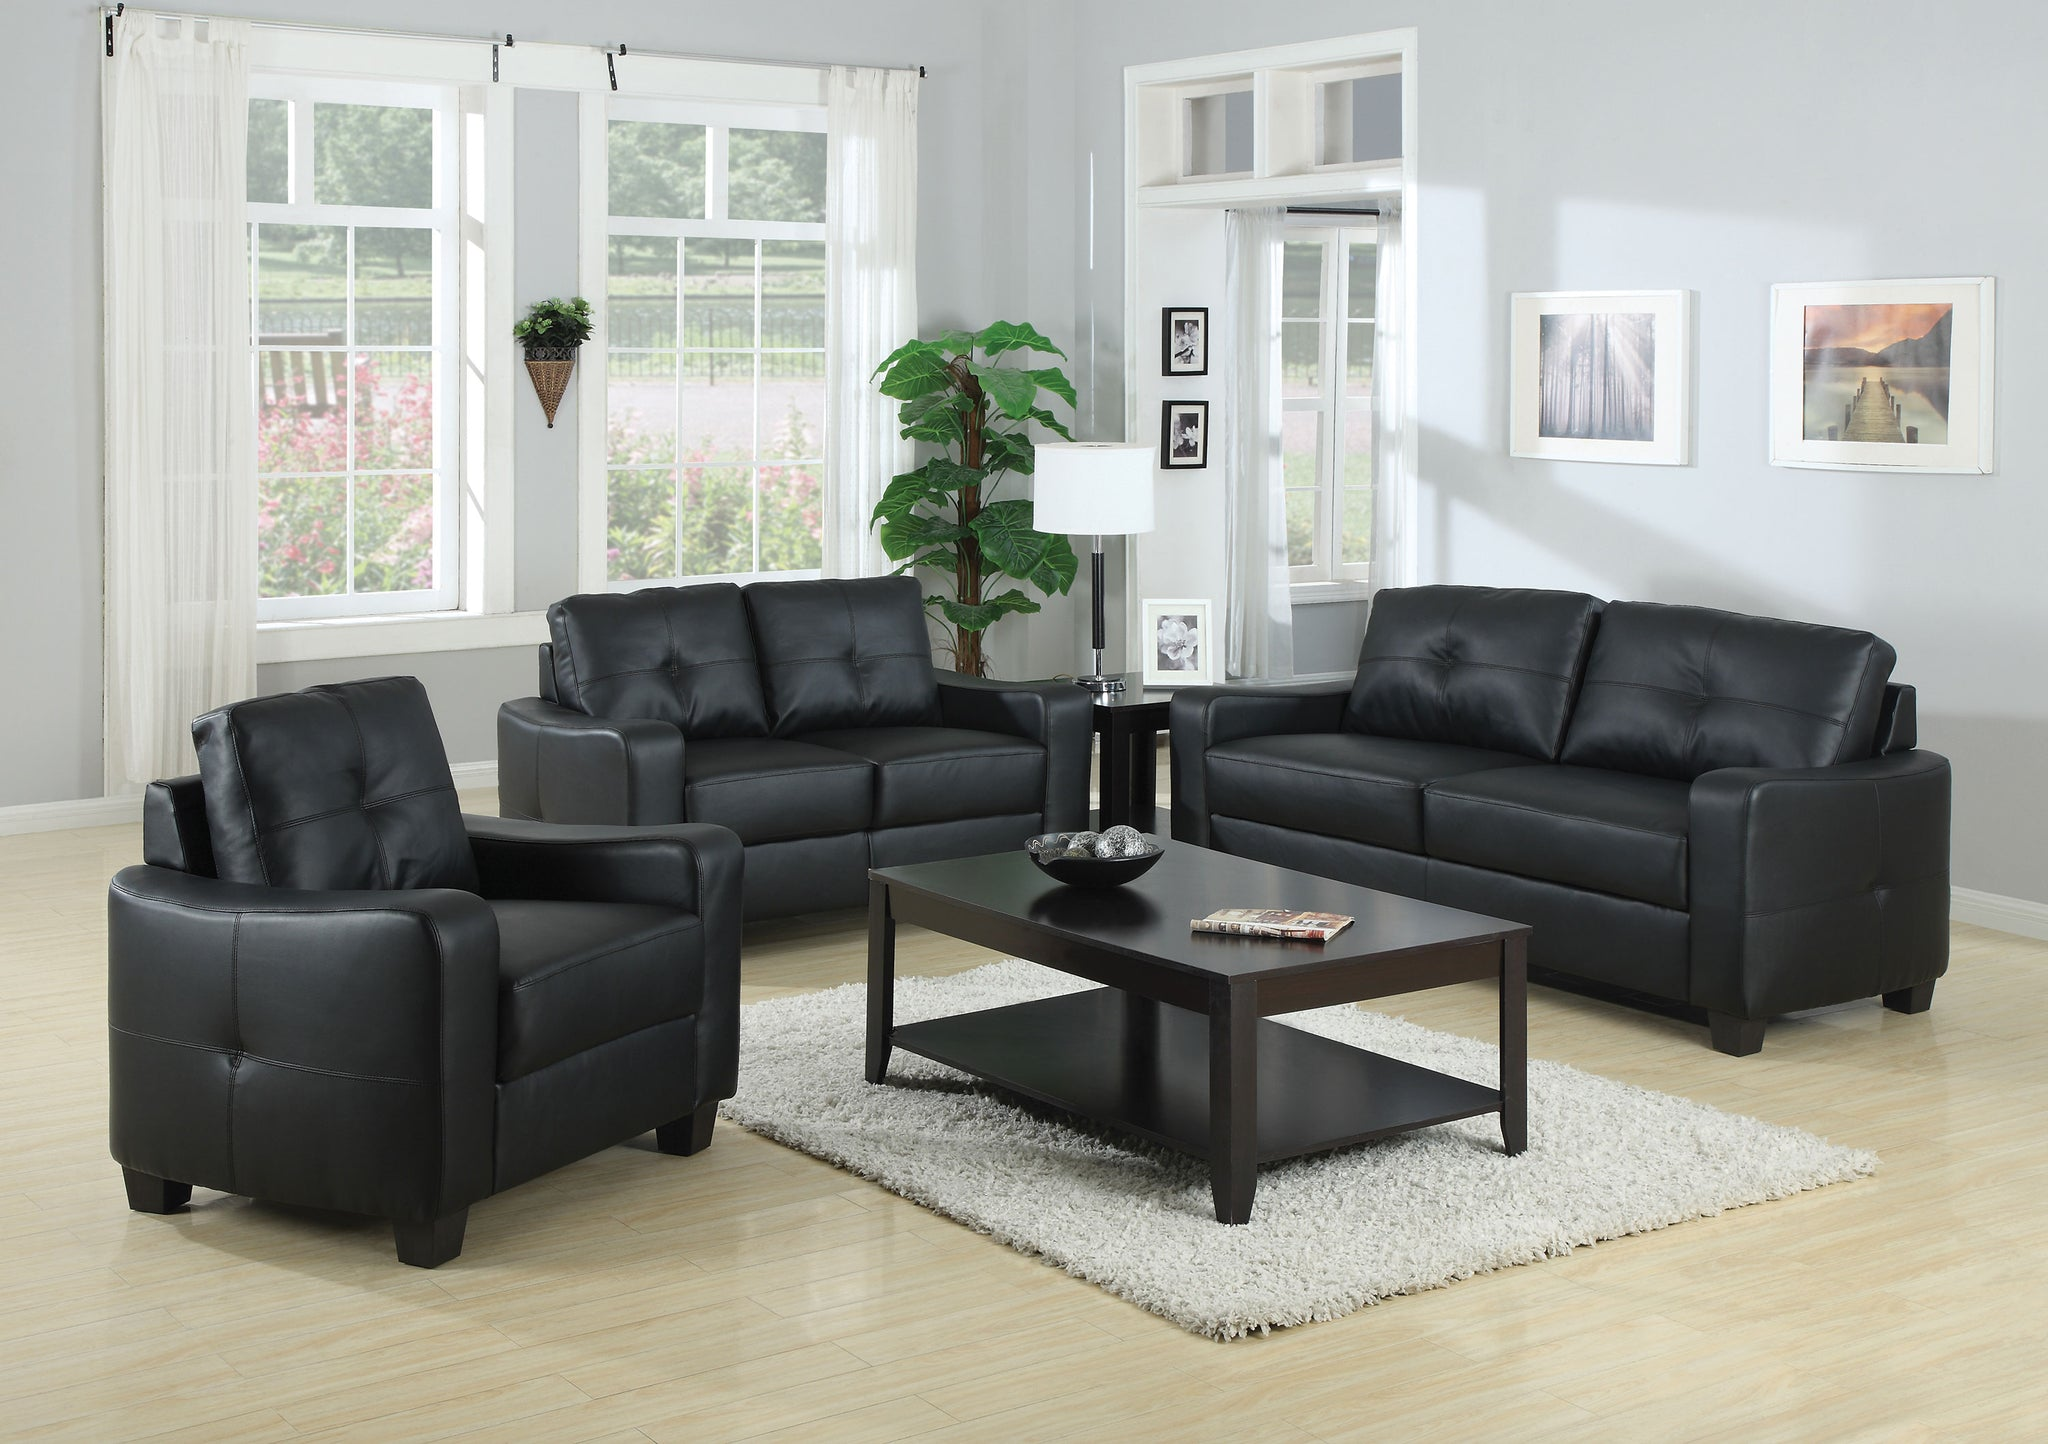 Soft Bonded Black Leather Living Room Set – Best for Less Mattress ...